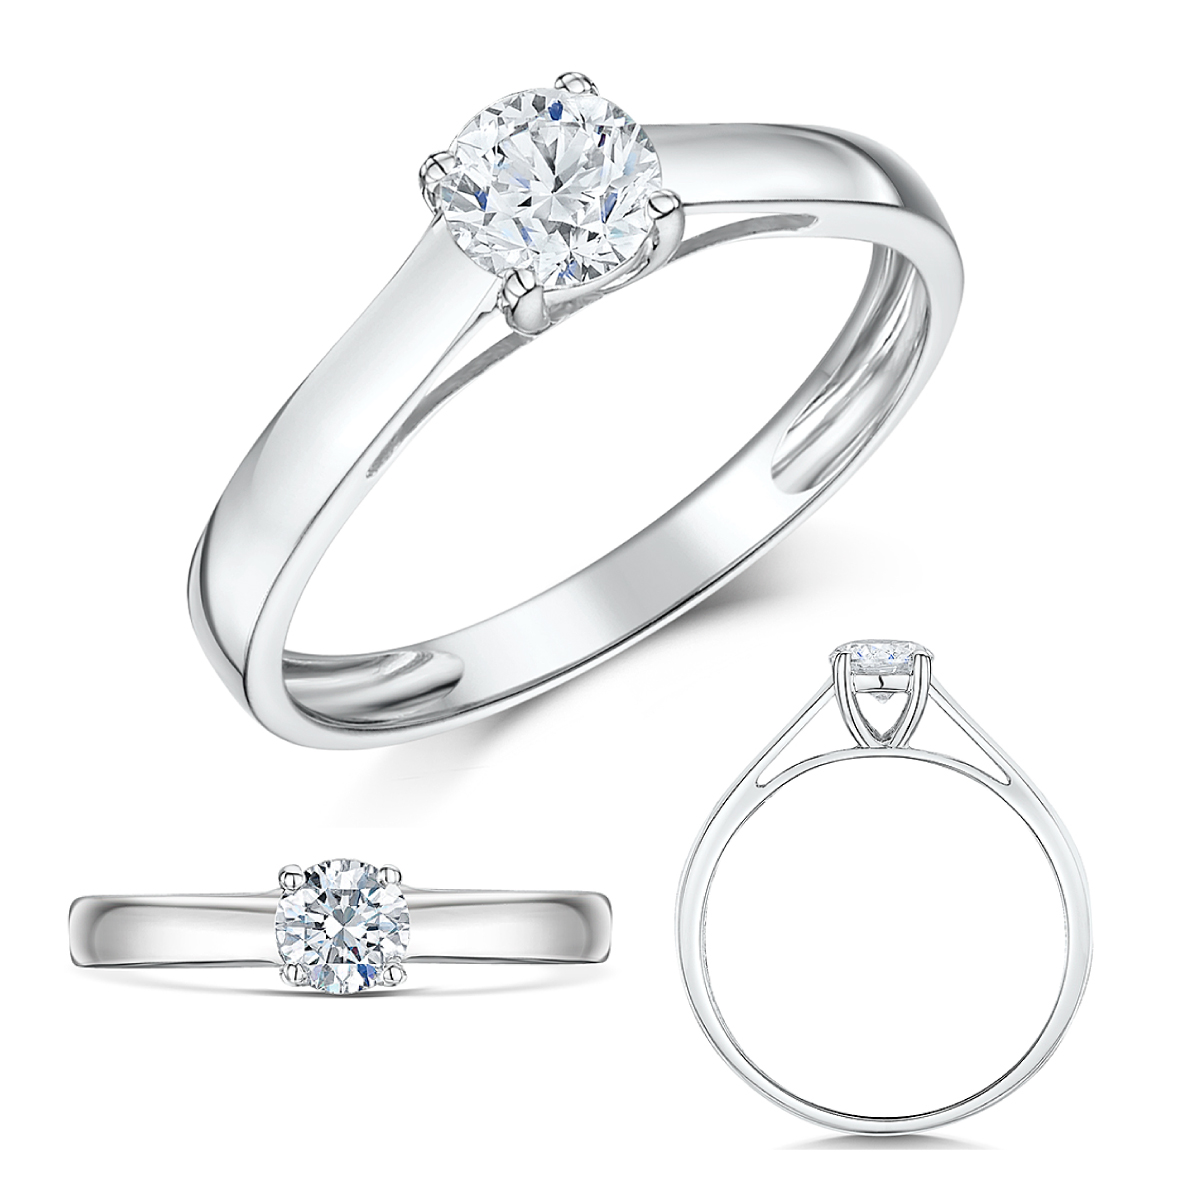 9ct White Gold Half Carat Diamond Solitaire Engagement Ring